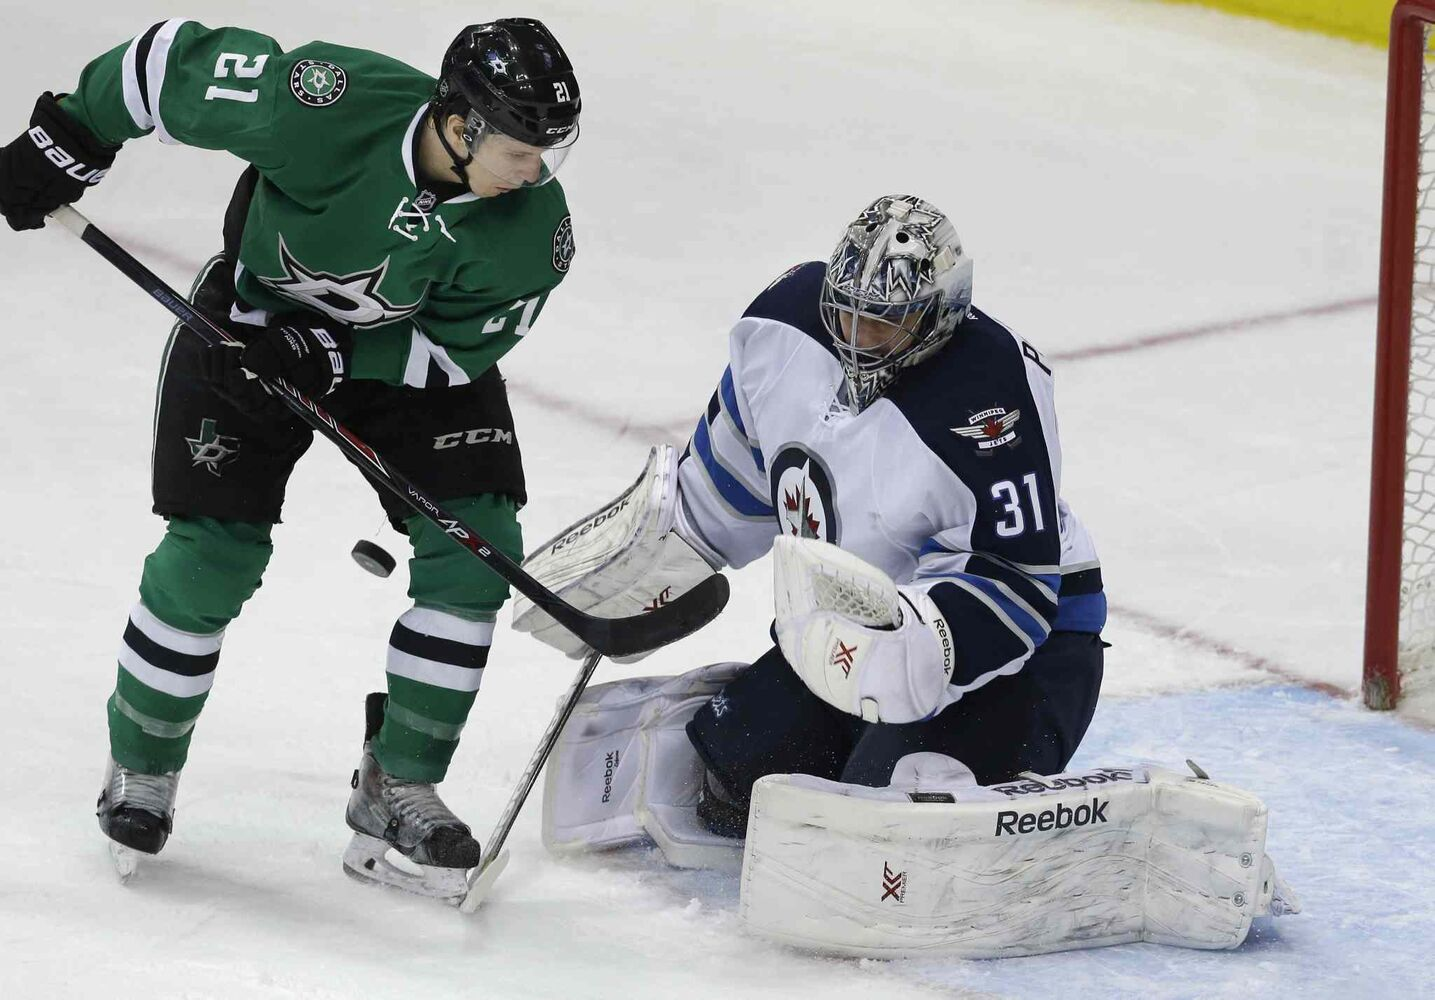 Dallas Stars left wing Antoine Roussel (21) tries to get the puck past Winnipeg Jets goalie Ondrej Pavelec (31) during second period. (LM Otero / The Associated Press)